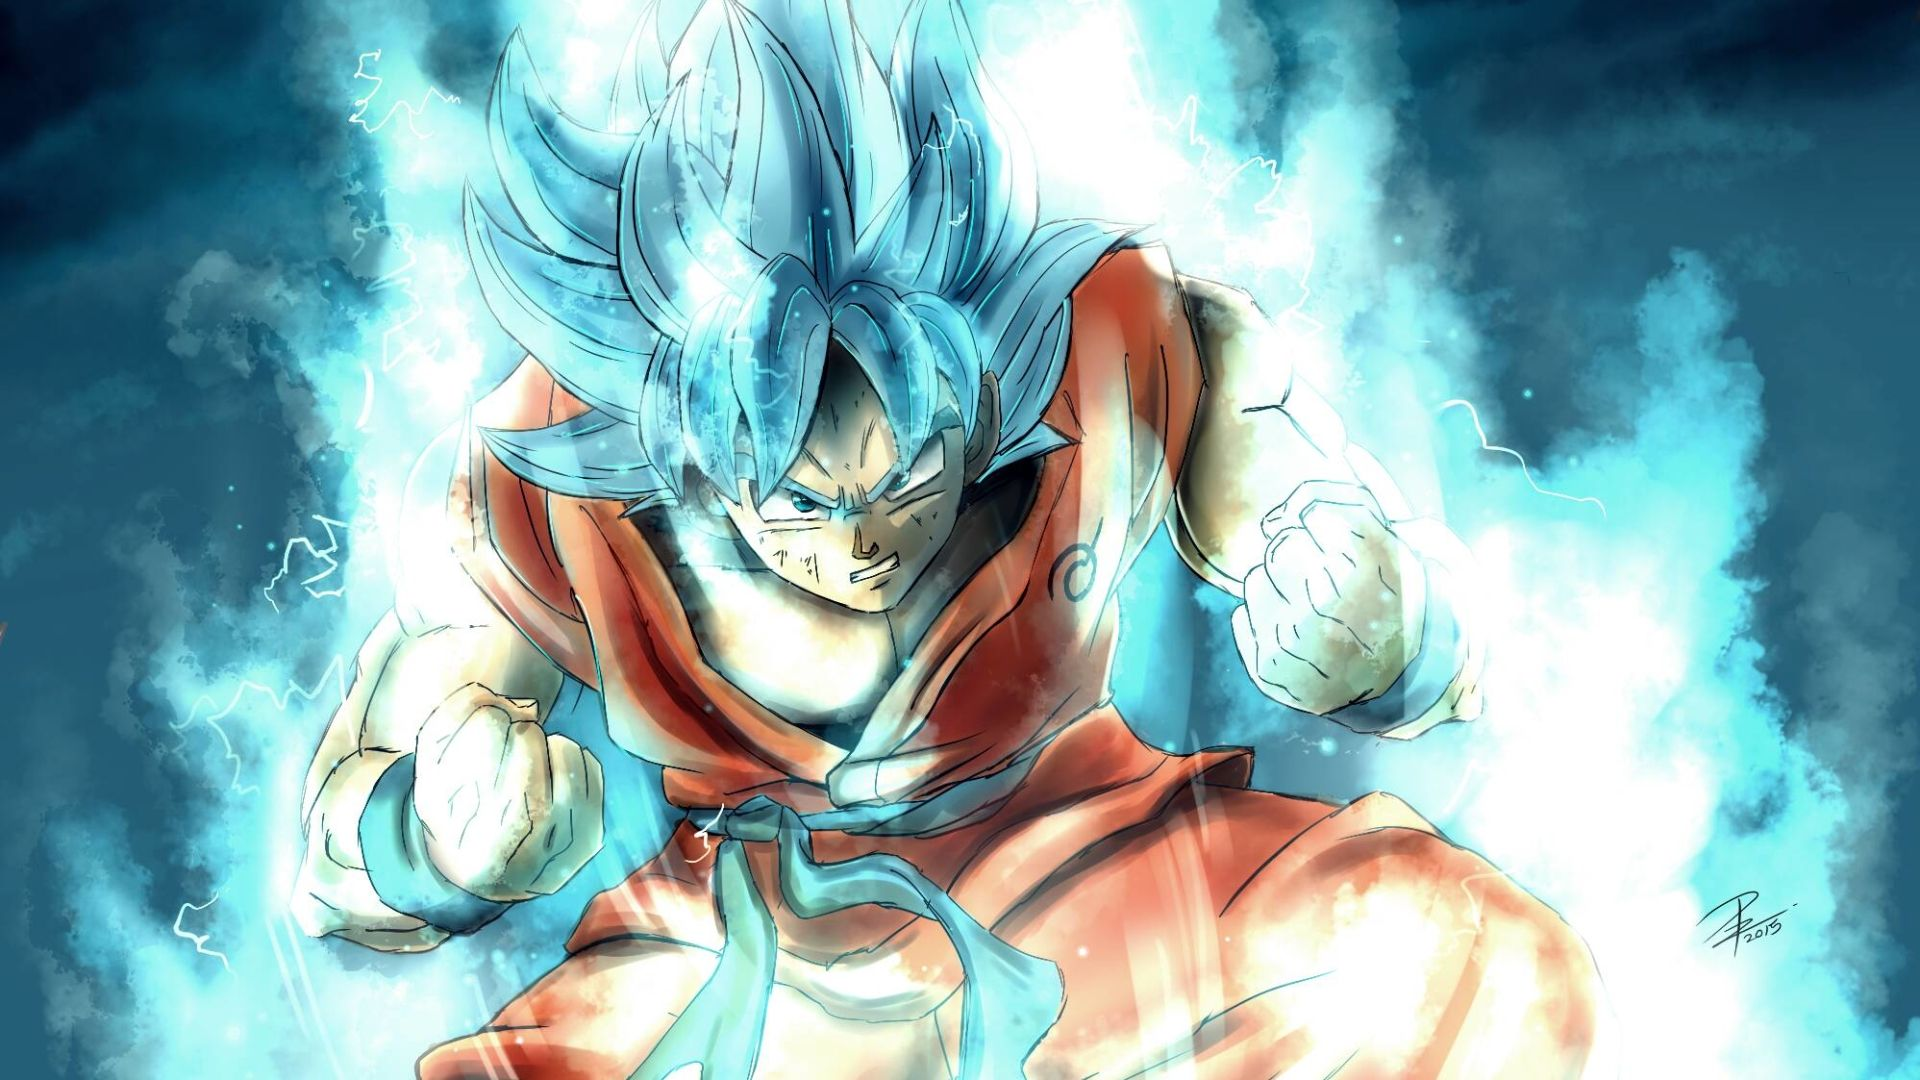 Wallpaper Dragon Ball Super Goku Saiyan God